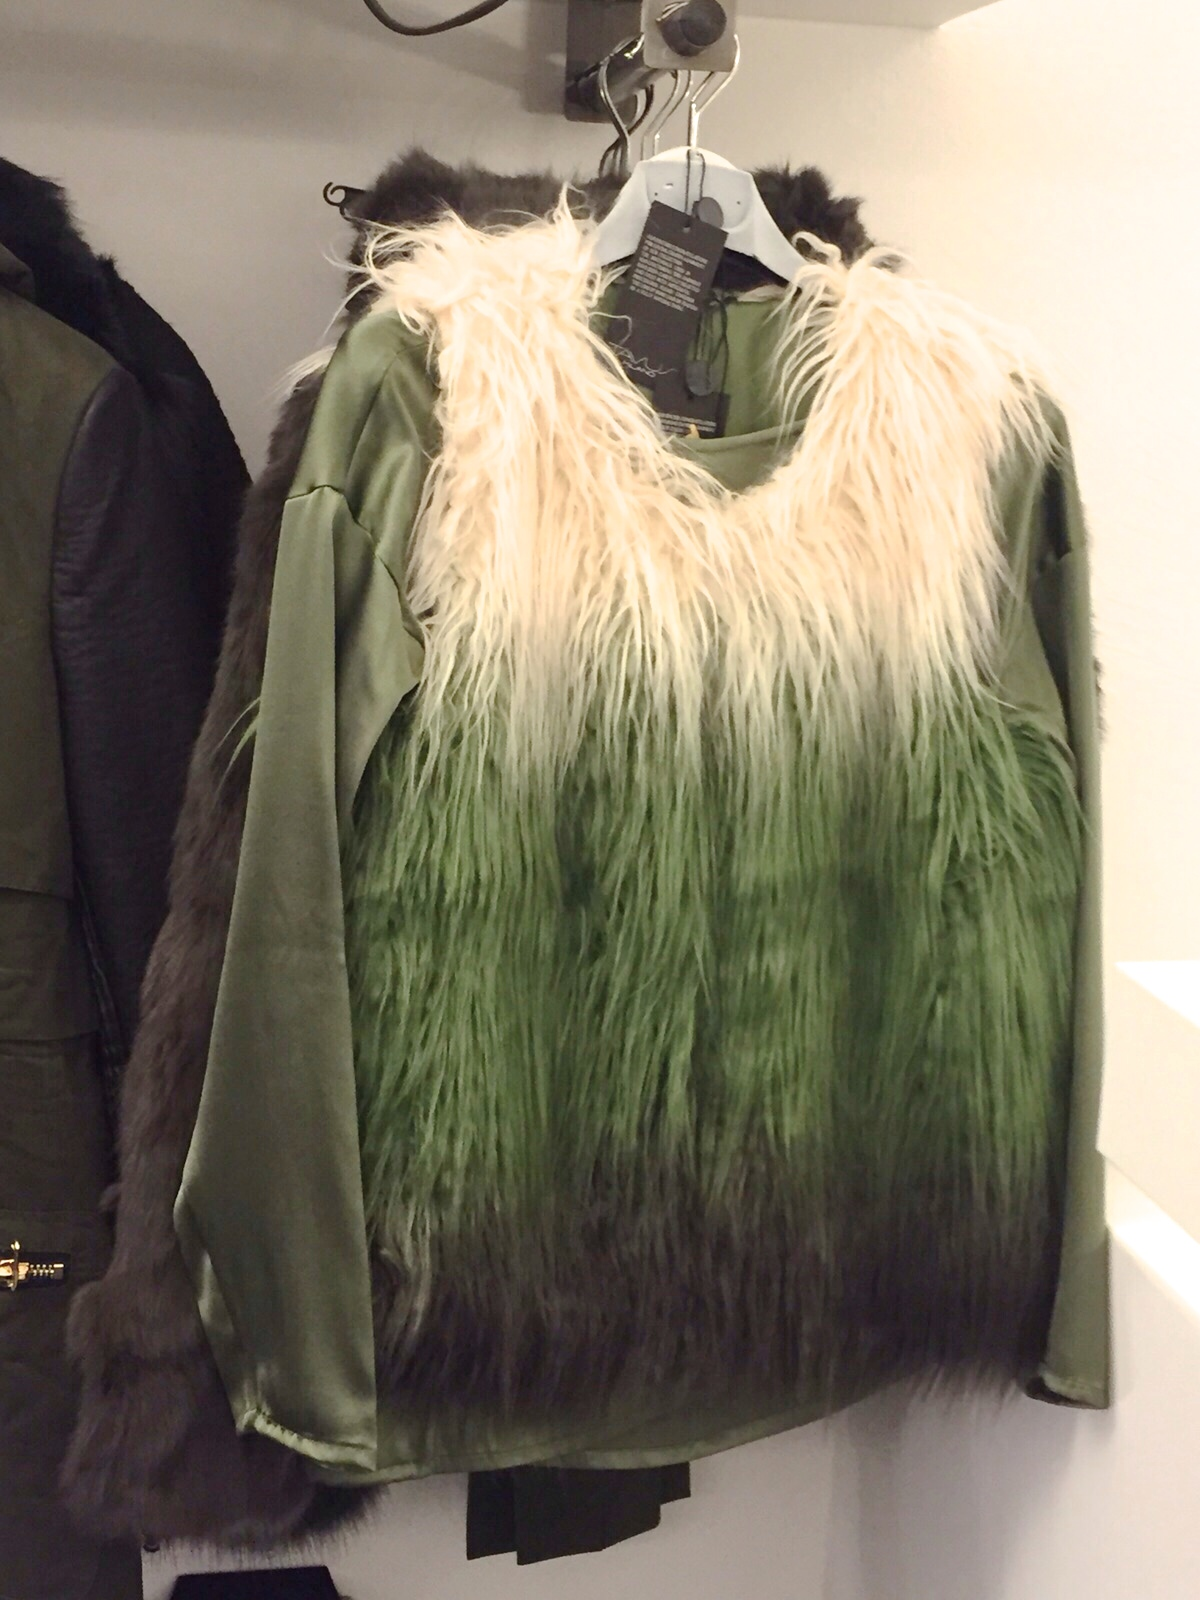 gilet_ecopelliccia_filosofy_showroom_asmileplease